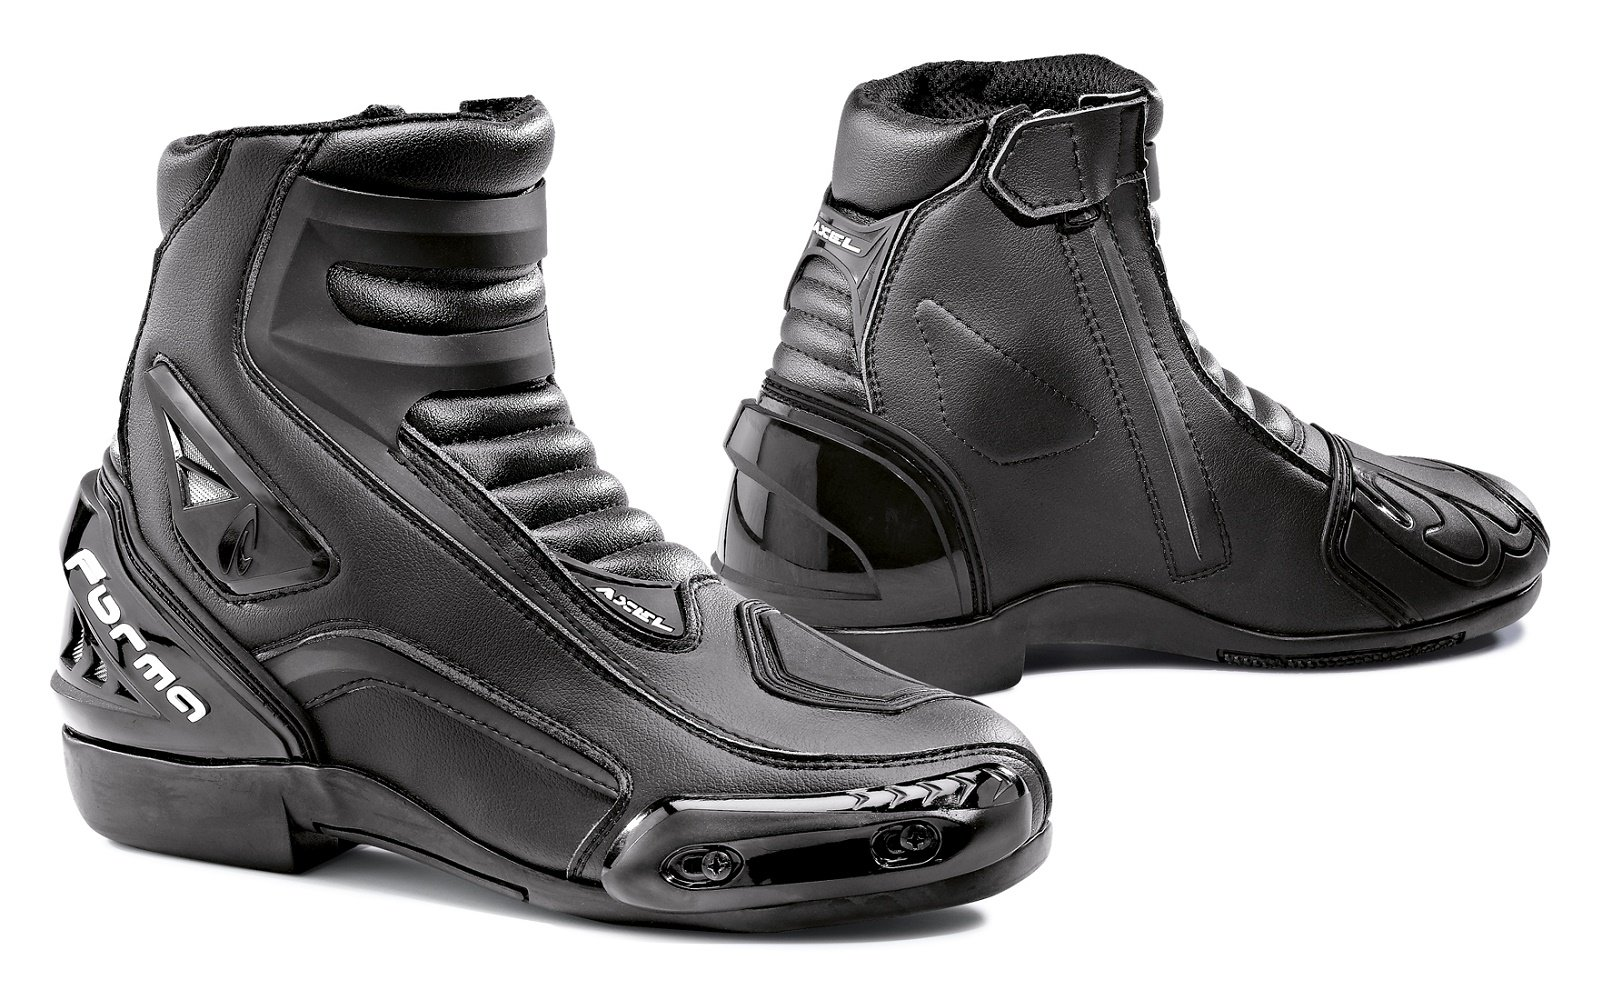 Forma Axel Street Motorcycle Boots (Black, Size 11 US/Size 45 Euro)